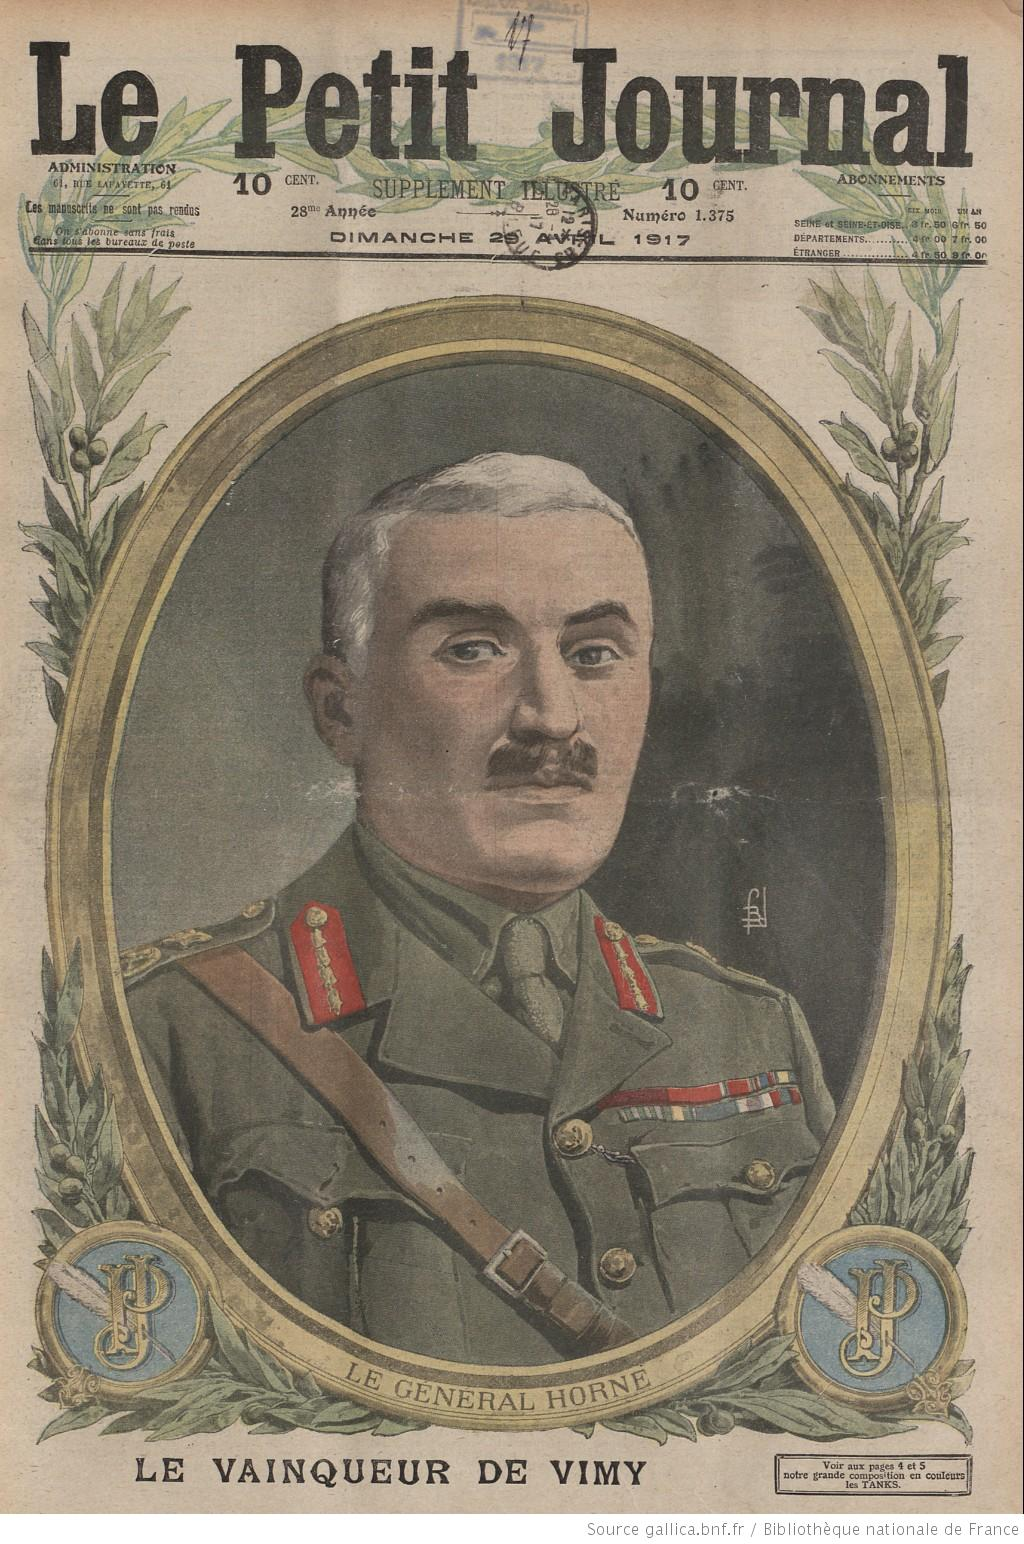 LPJ Illustre 1917-04-29 A.jpg